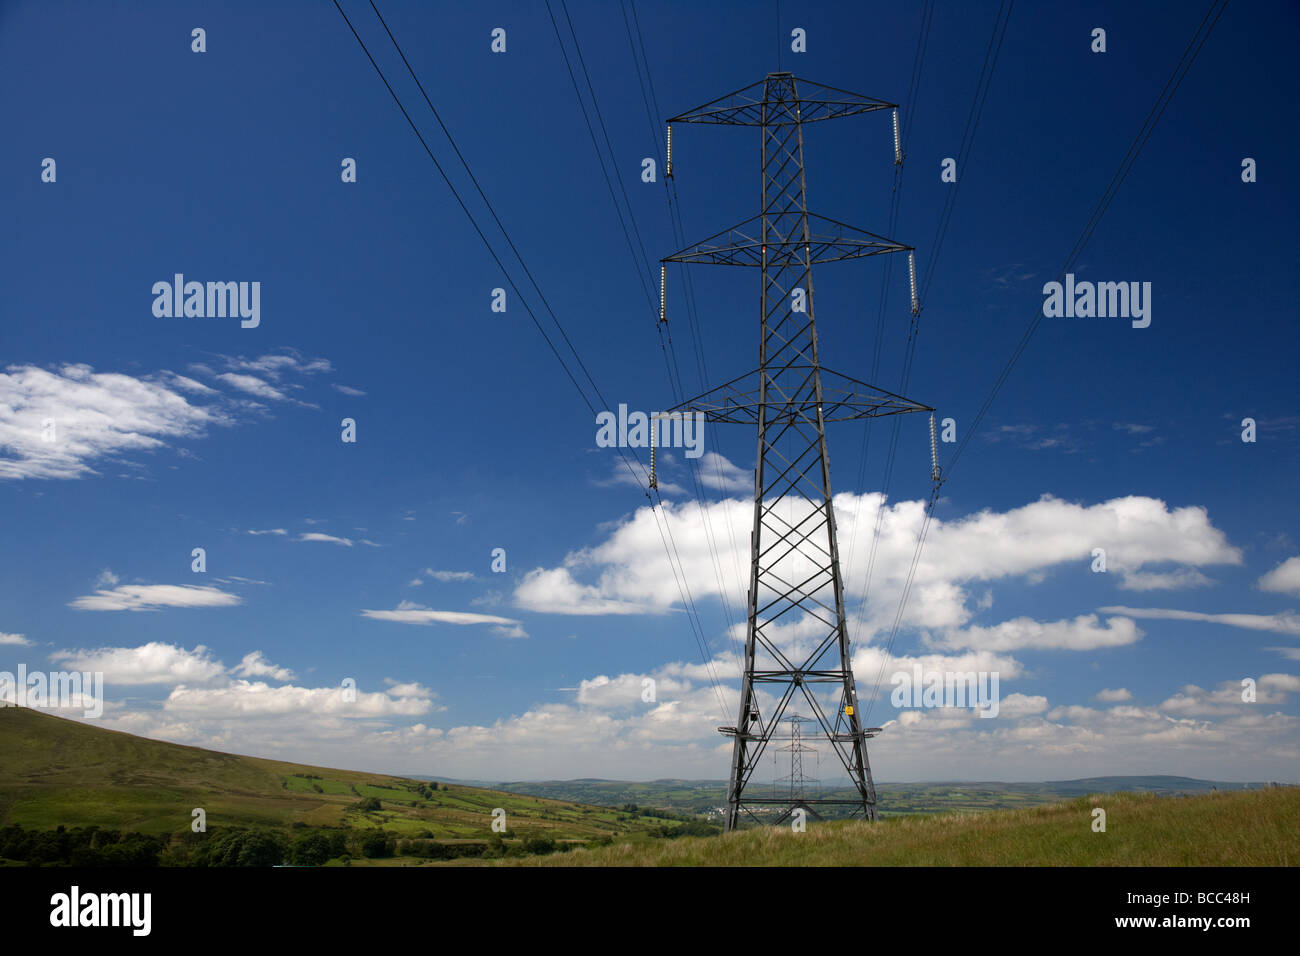 Electricity Networks High Resolution Stock Photography And Images